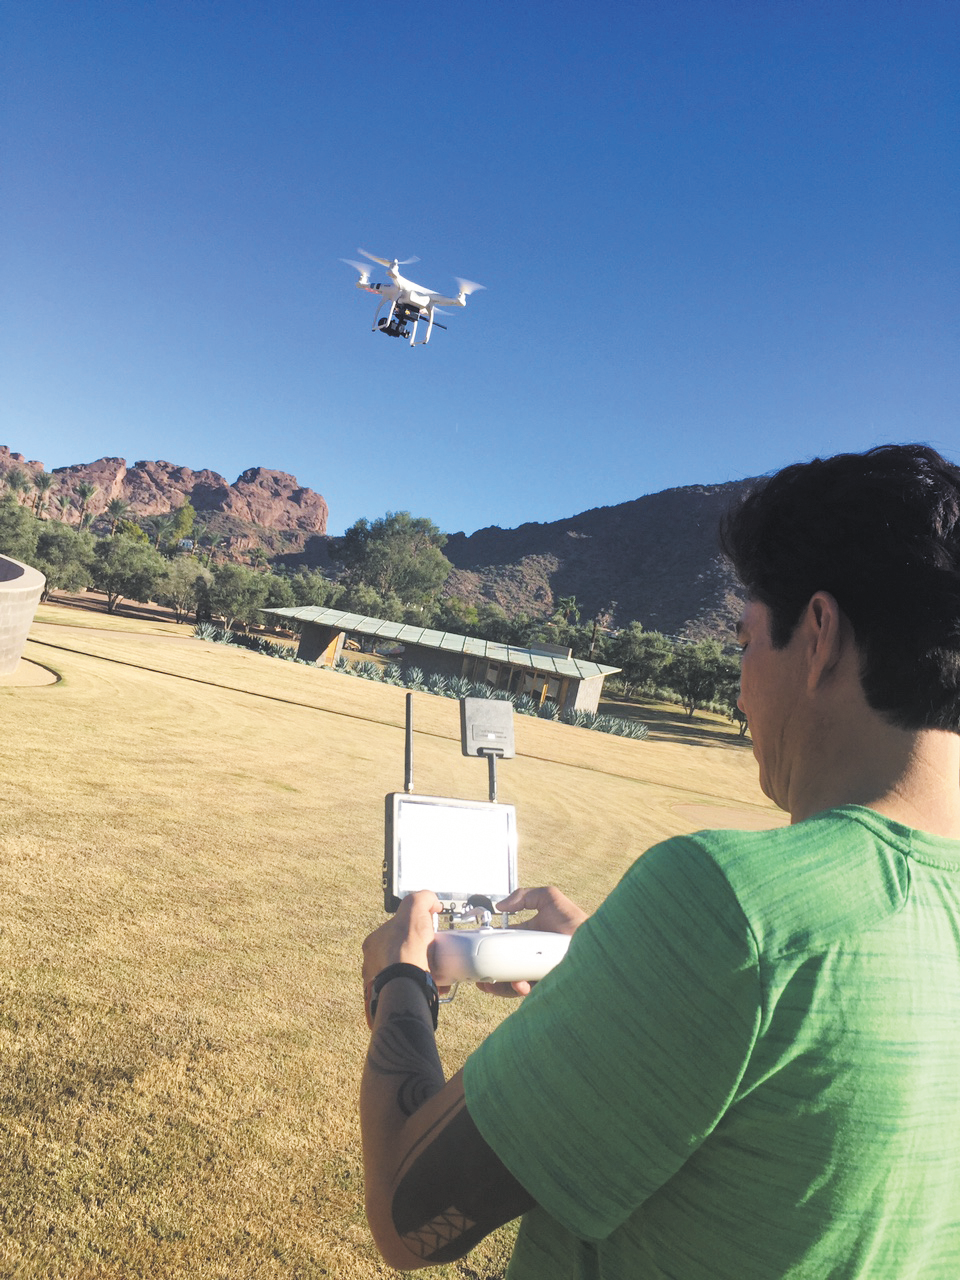 Flying-Drones-Arizona